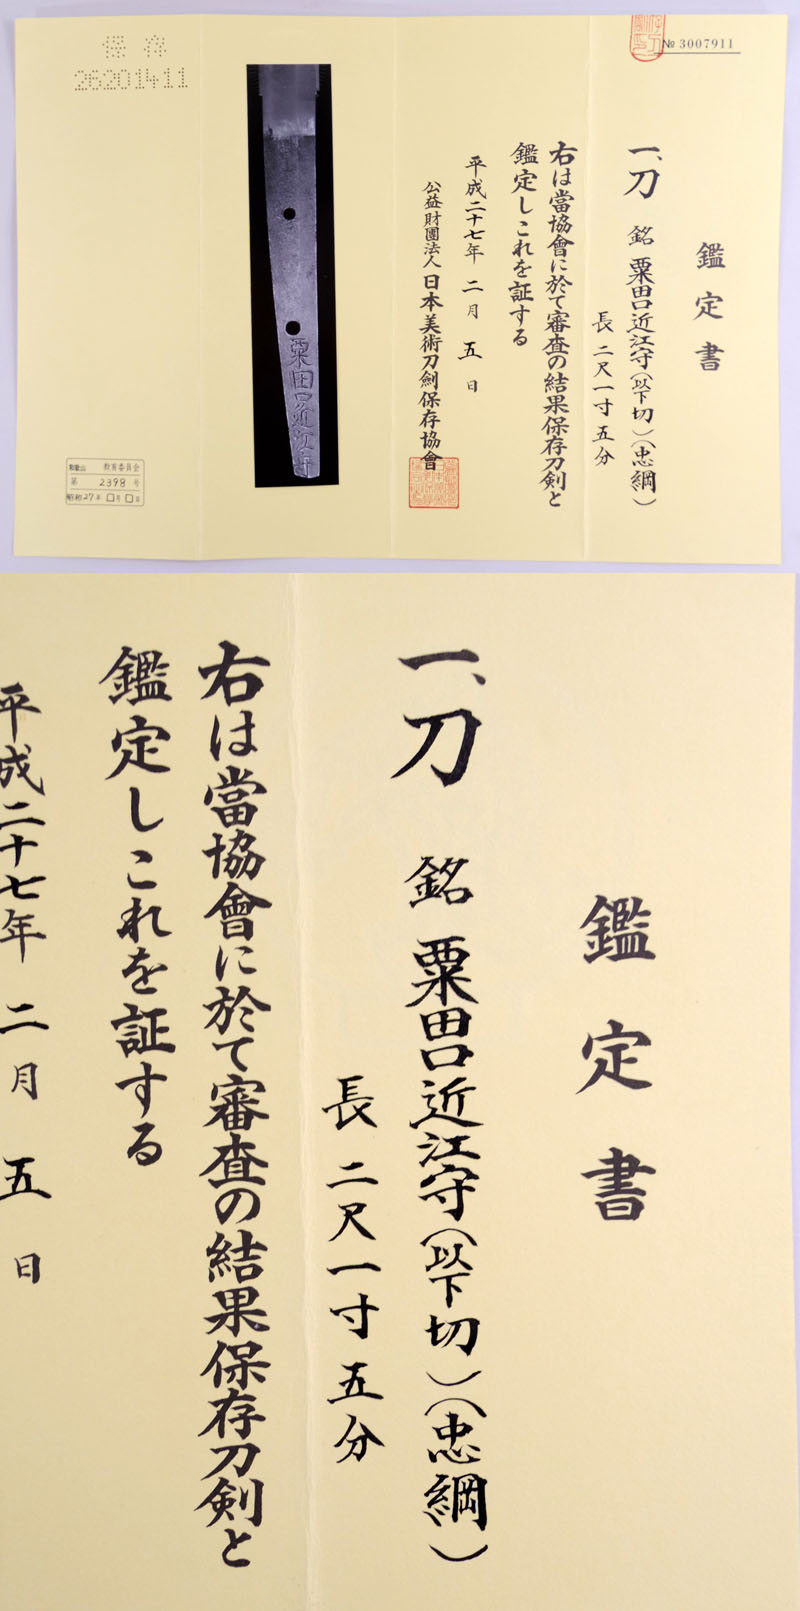 粟田口近江守(以下切)(忠綱・初代) Picture of Certificate